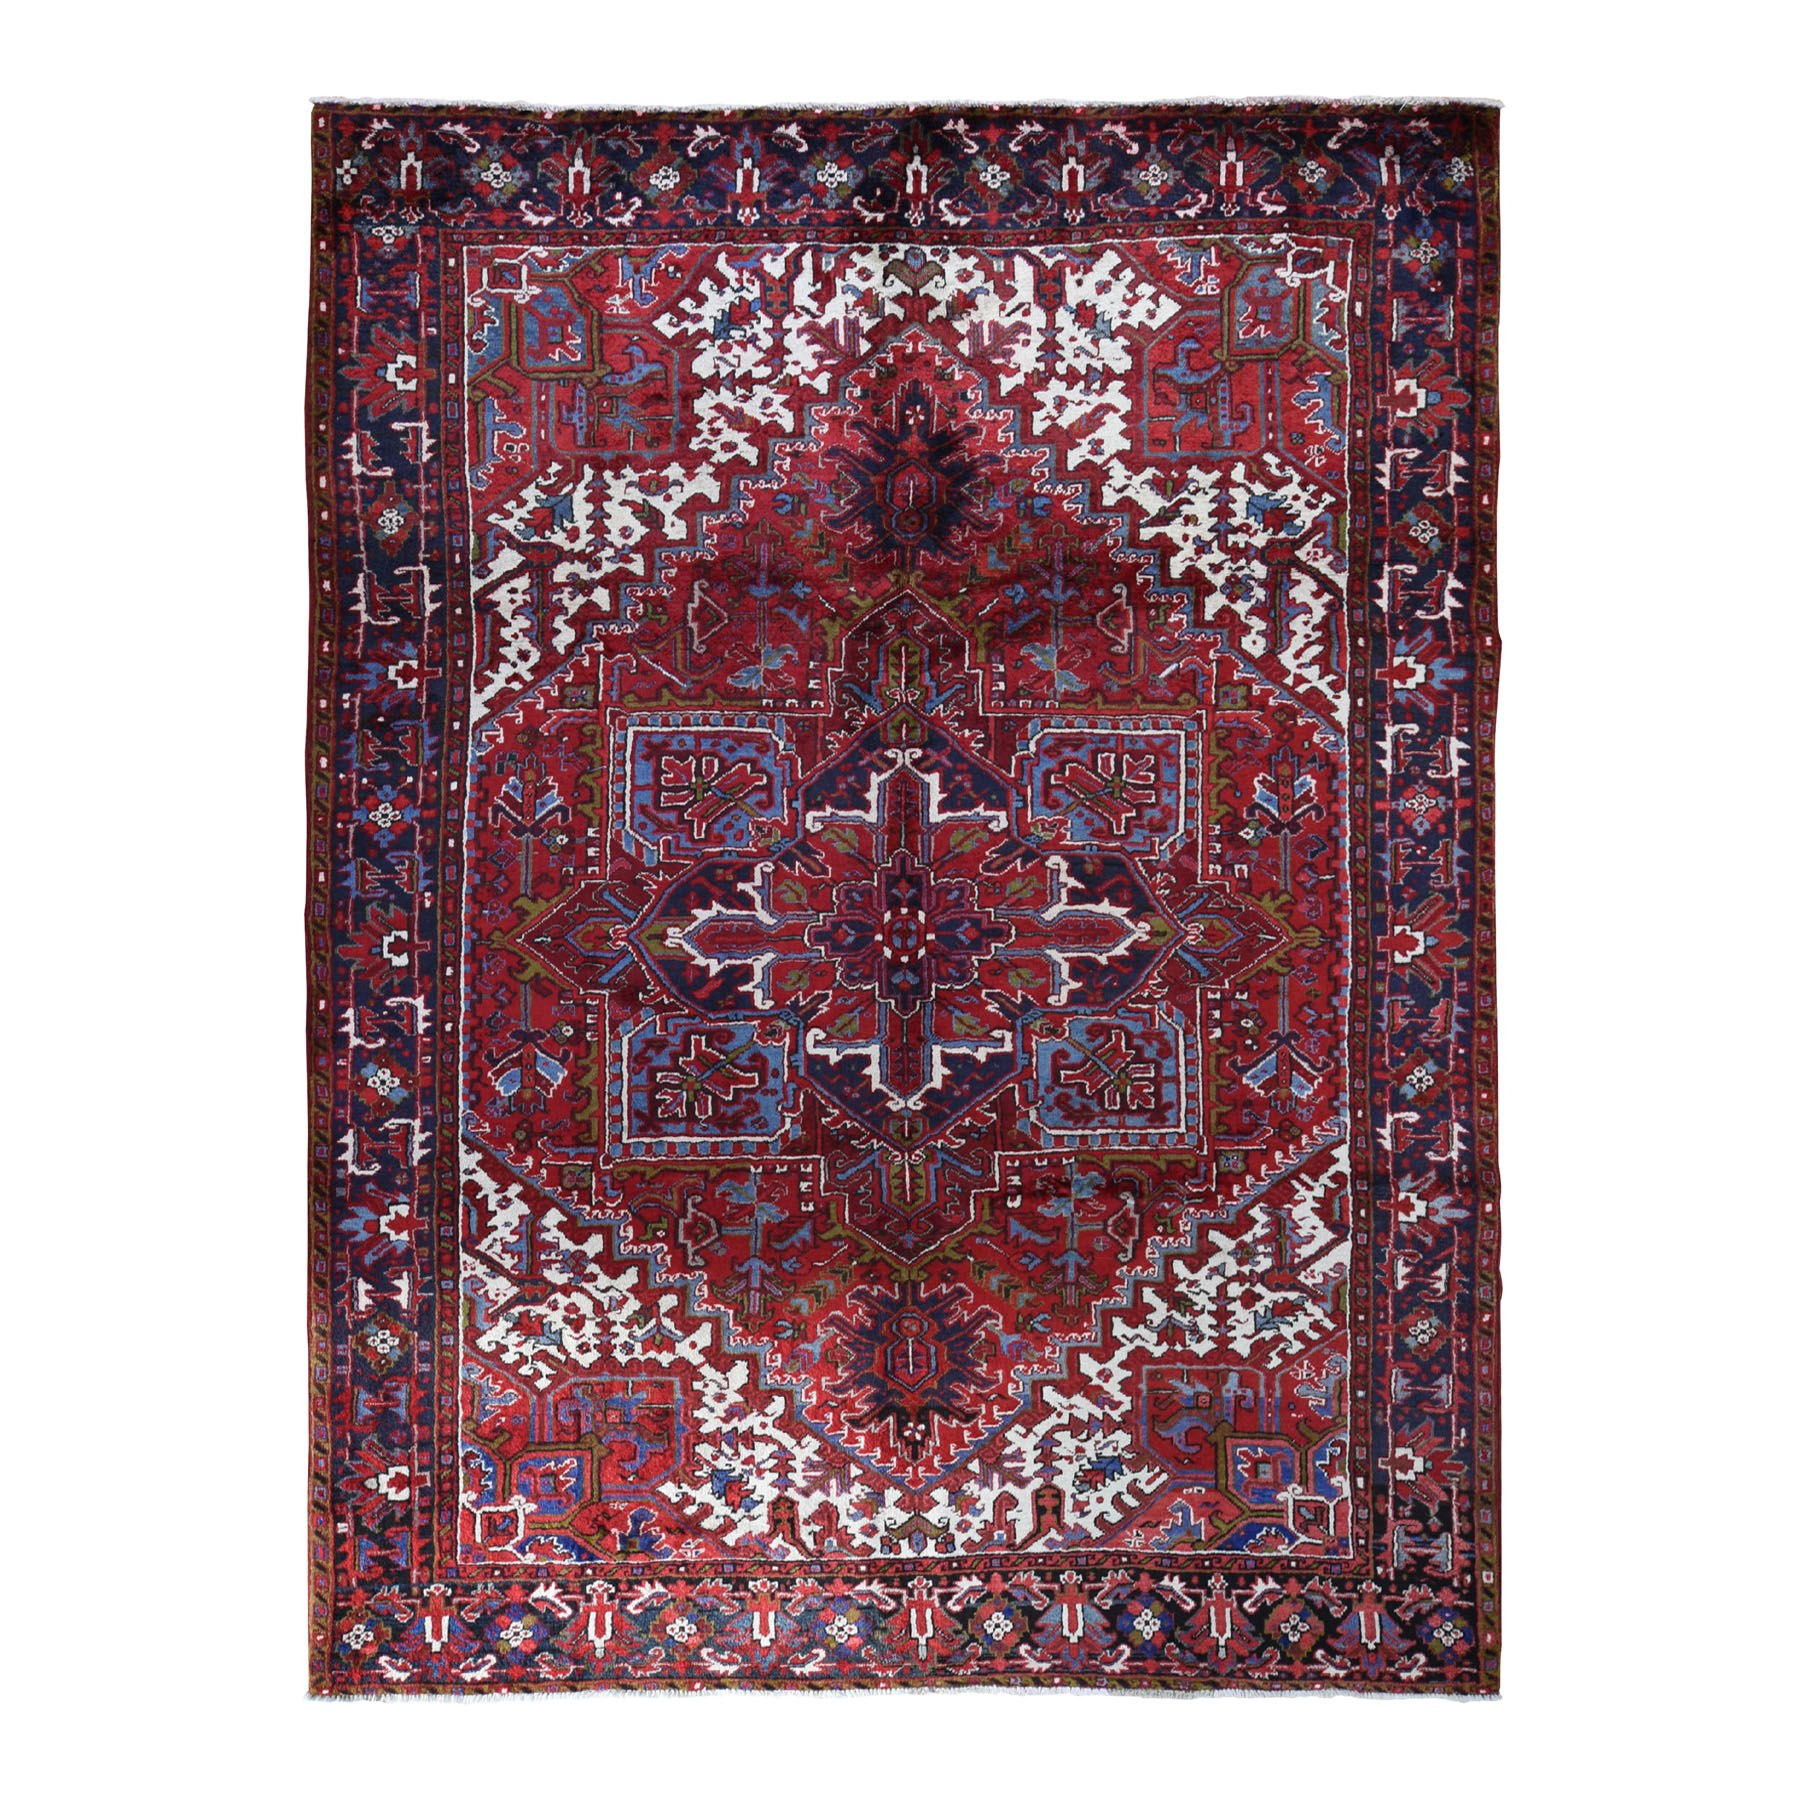 "7'6""x10'6"" Red Semi Antique Persian Heriz Geometric Design Thick and Plush Hand Knotted Oriental Rug"